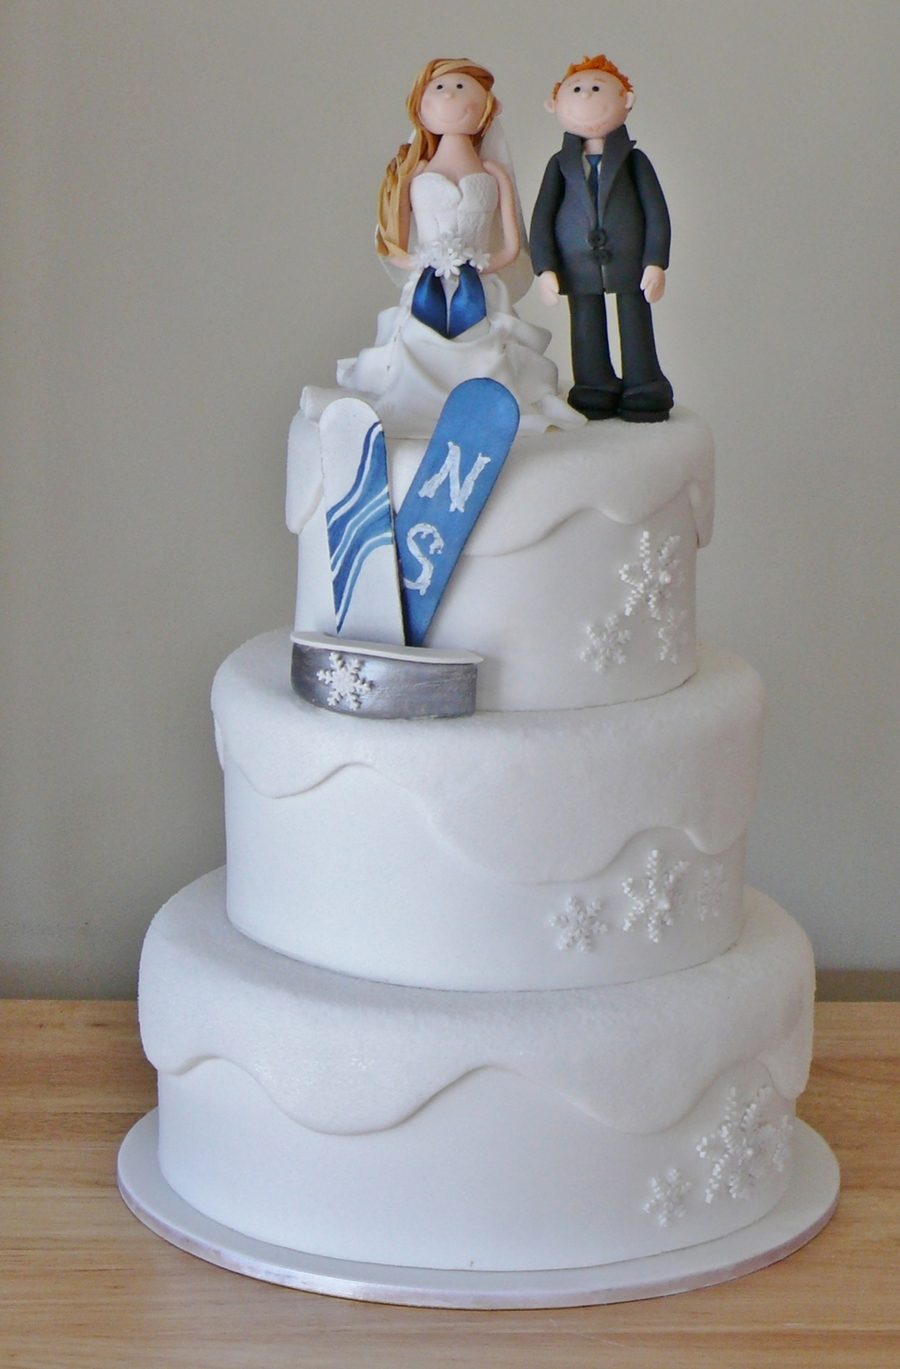 Snowboarding Wedding Cake on Cake Central